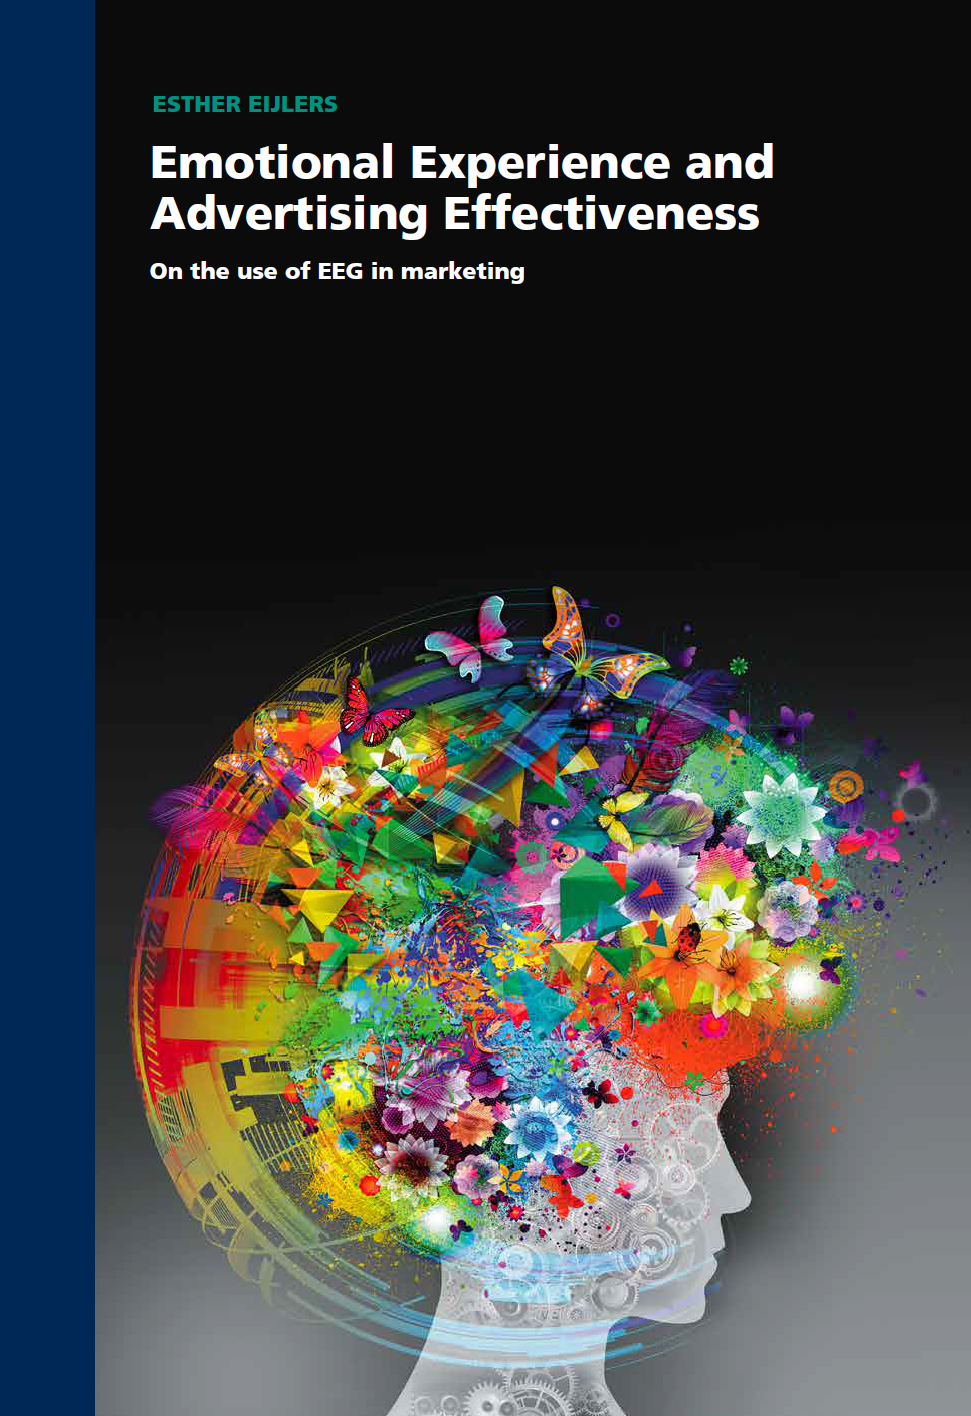 Emotional Experience and Advertising Effectiveness: On the use of EEG in marketing